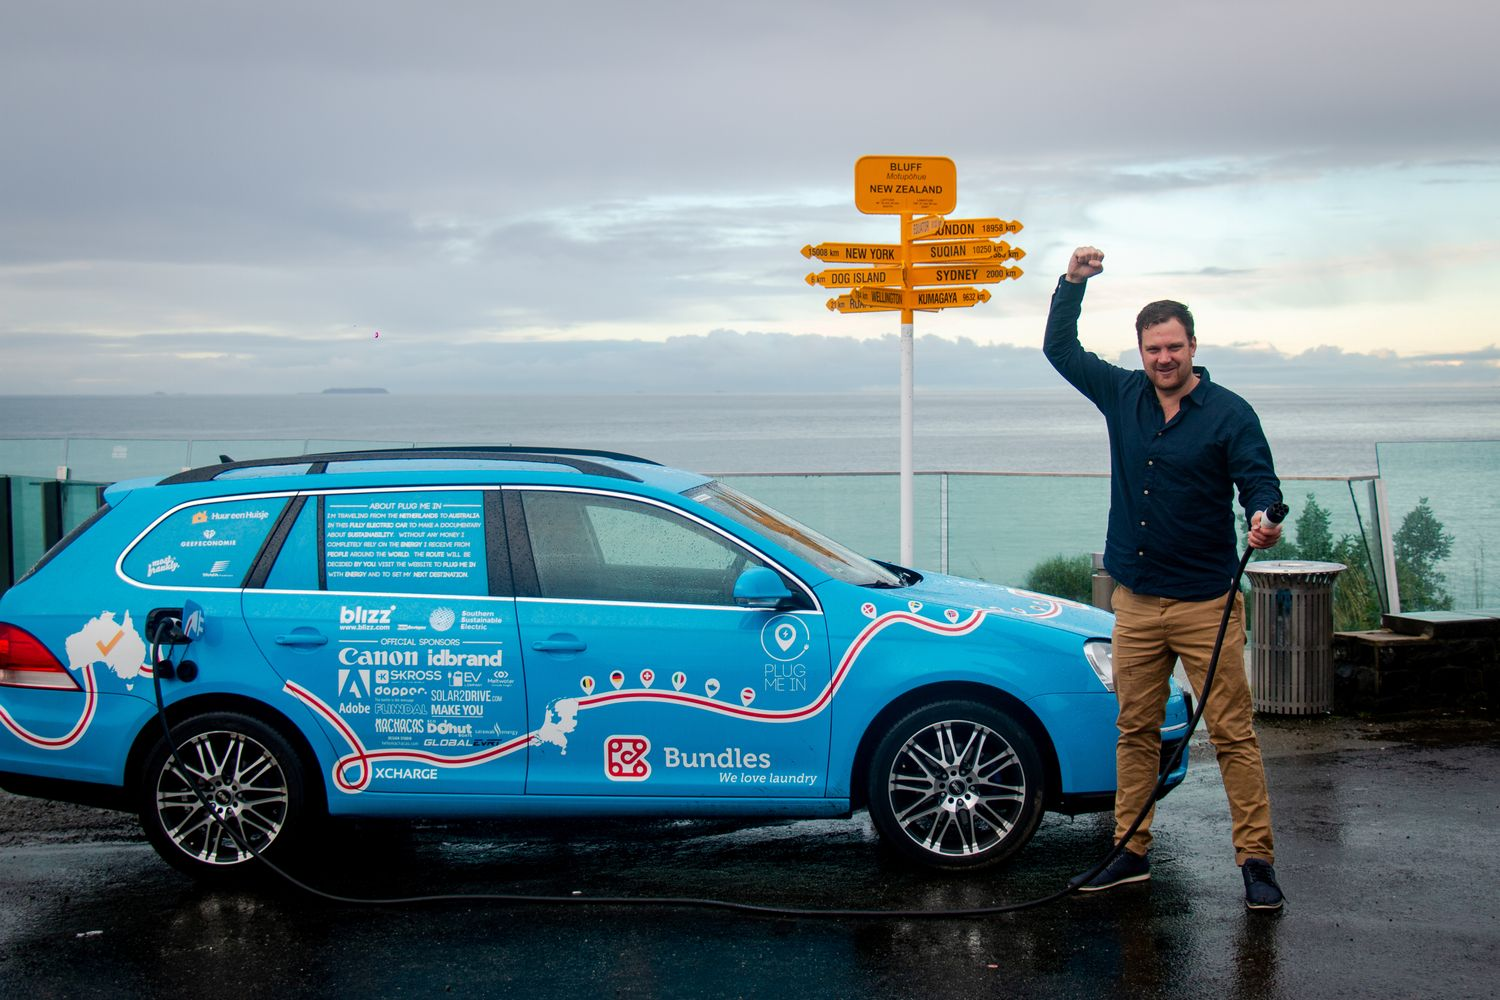 Dutchman Wiebe Wakker holds a charging cable as he poses with his electric vehicle, the Blue Bandit, after travelling 34 countries to reach Bluff, New Zealand's most southern tip, in this handout photo released on Friday. (Wiebe Wakker/Handout via Reuters)